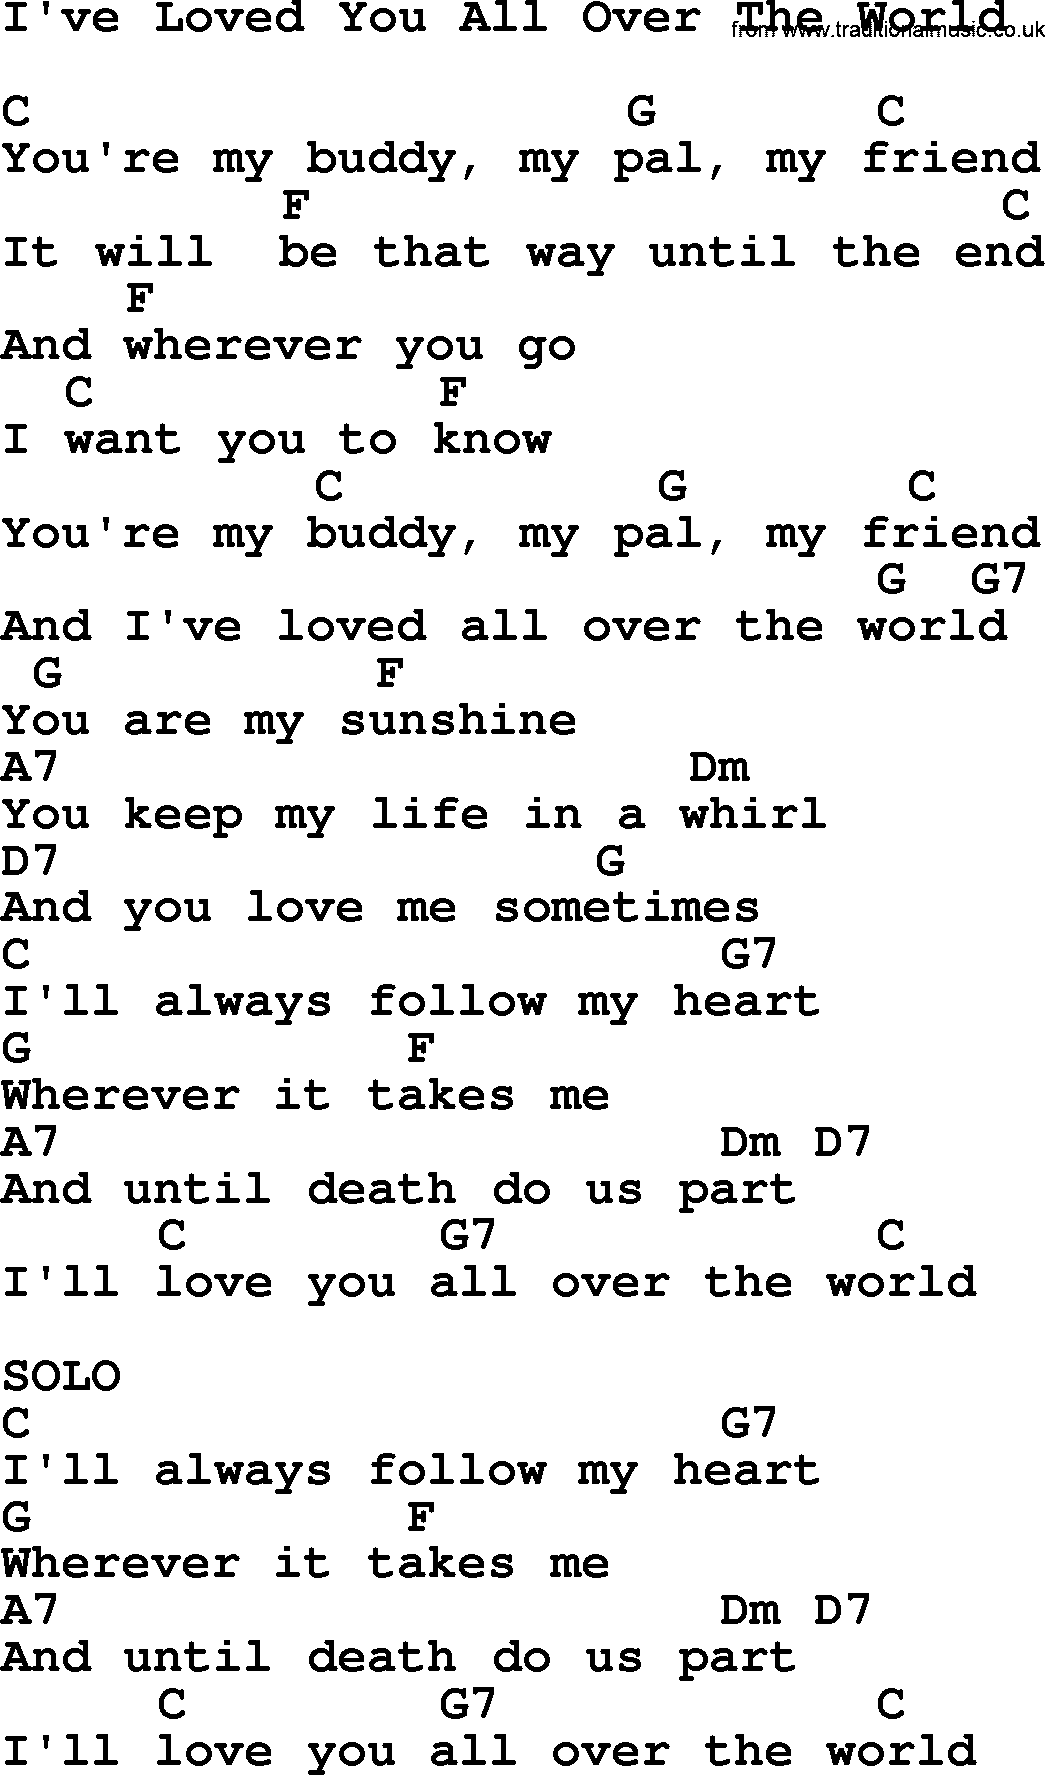 Willie Nelson Song Ive Loved You All Over The World Lyrics And Chords